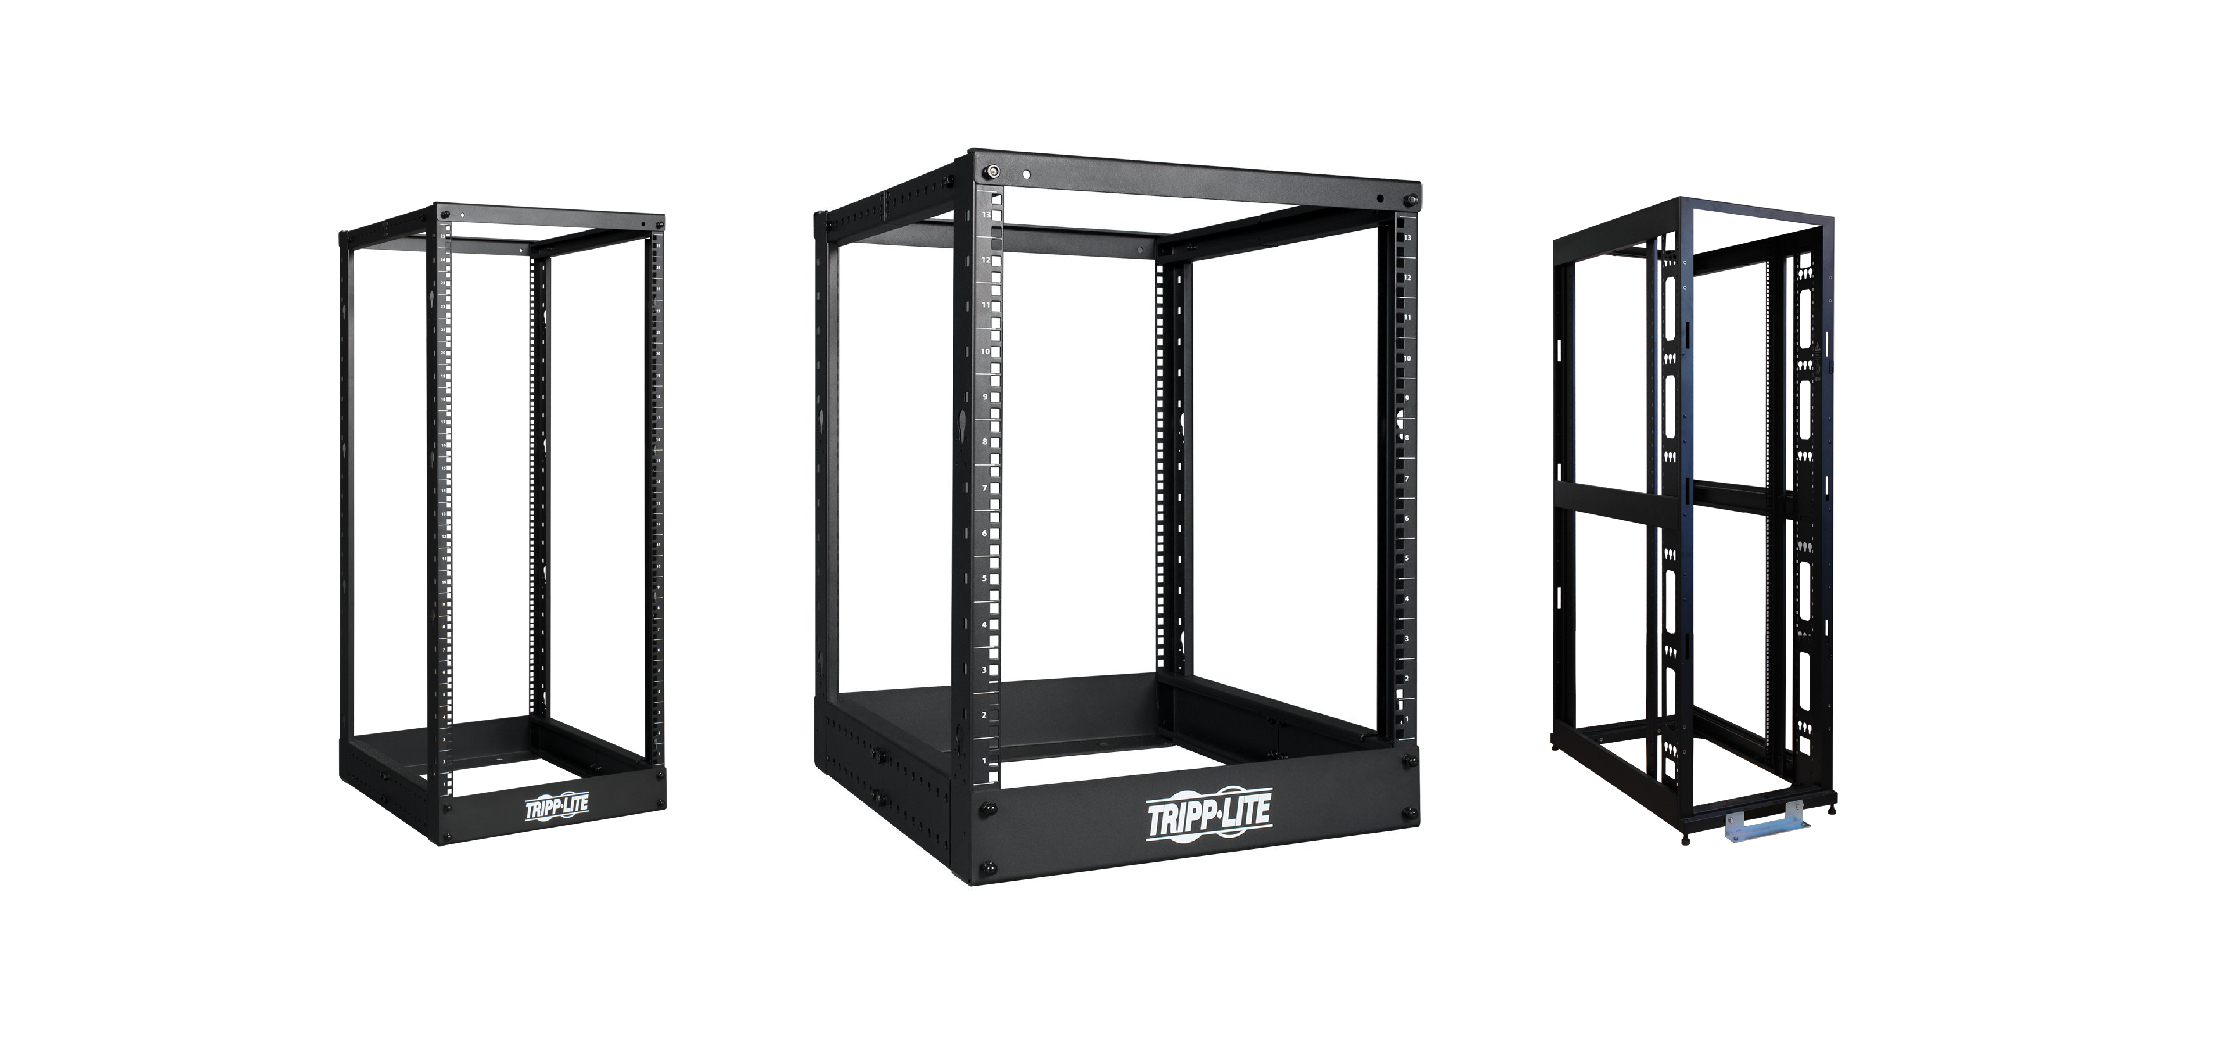 Makro Office Tripplite racks